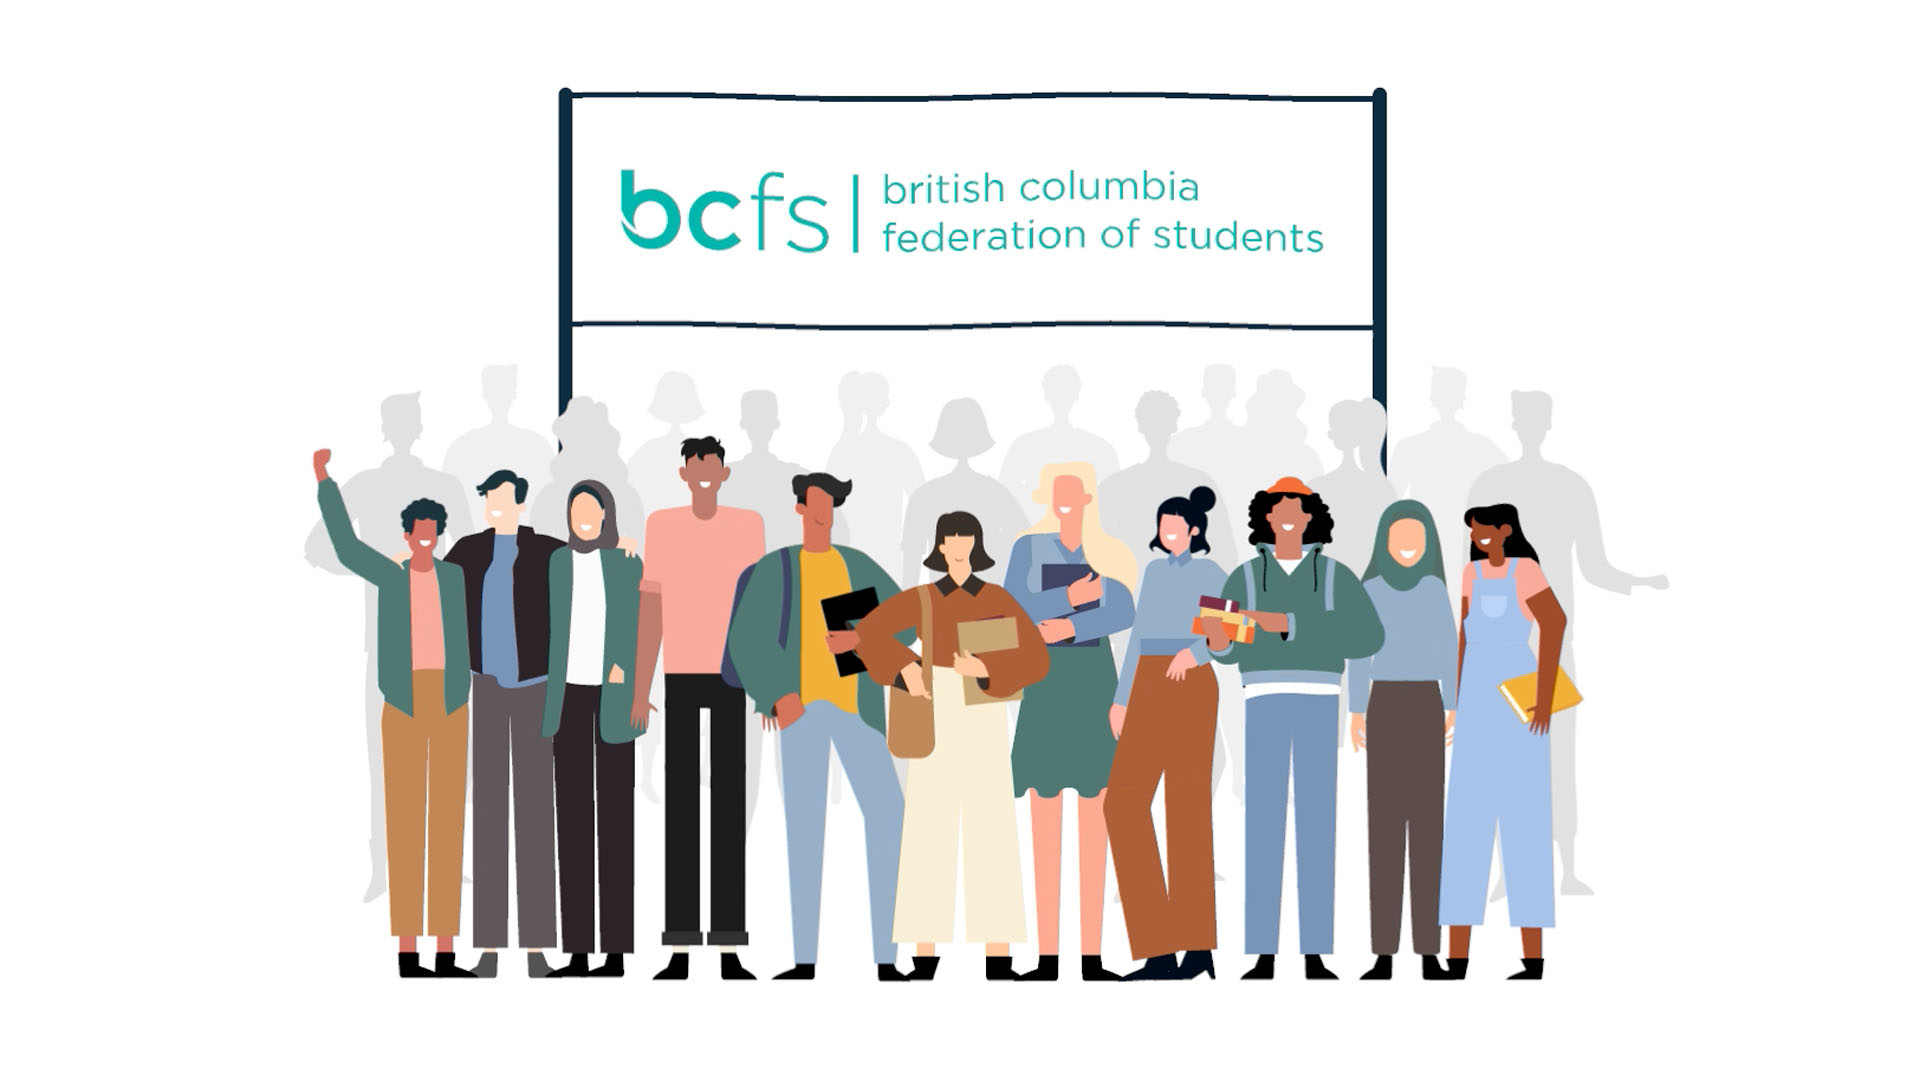 About the BCFS